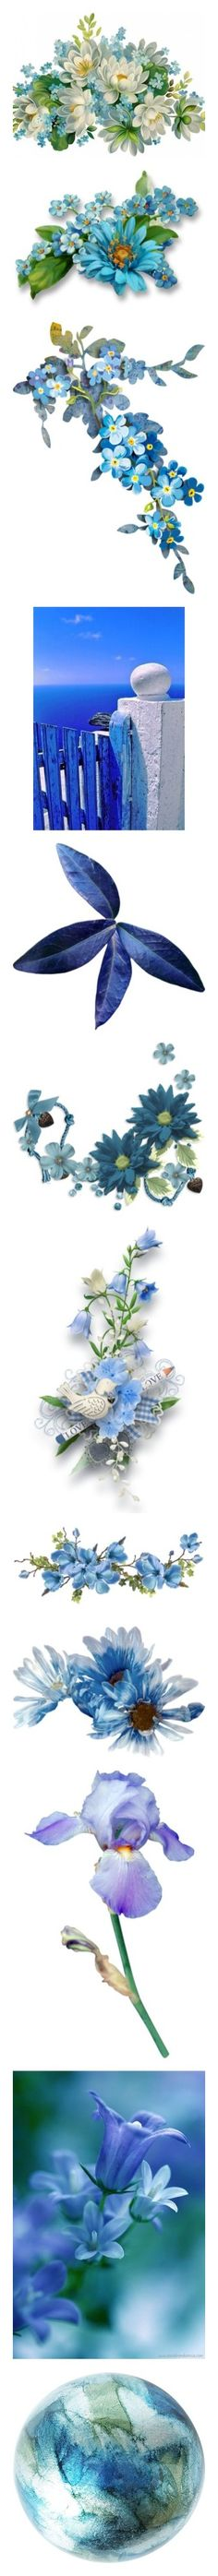 """BLUE; floral, bird. butterfly, texture, scenes, background,,,"" by judymjohnson ❤ liked on Polyvore featuring flowers, flora, easter, fillers, backgrounds, plants, effects, quotes, phrase and saying"